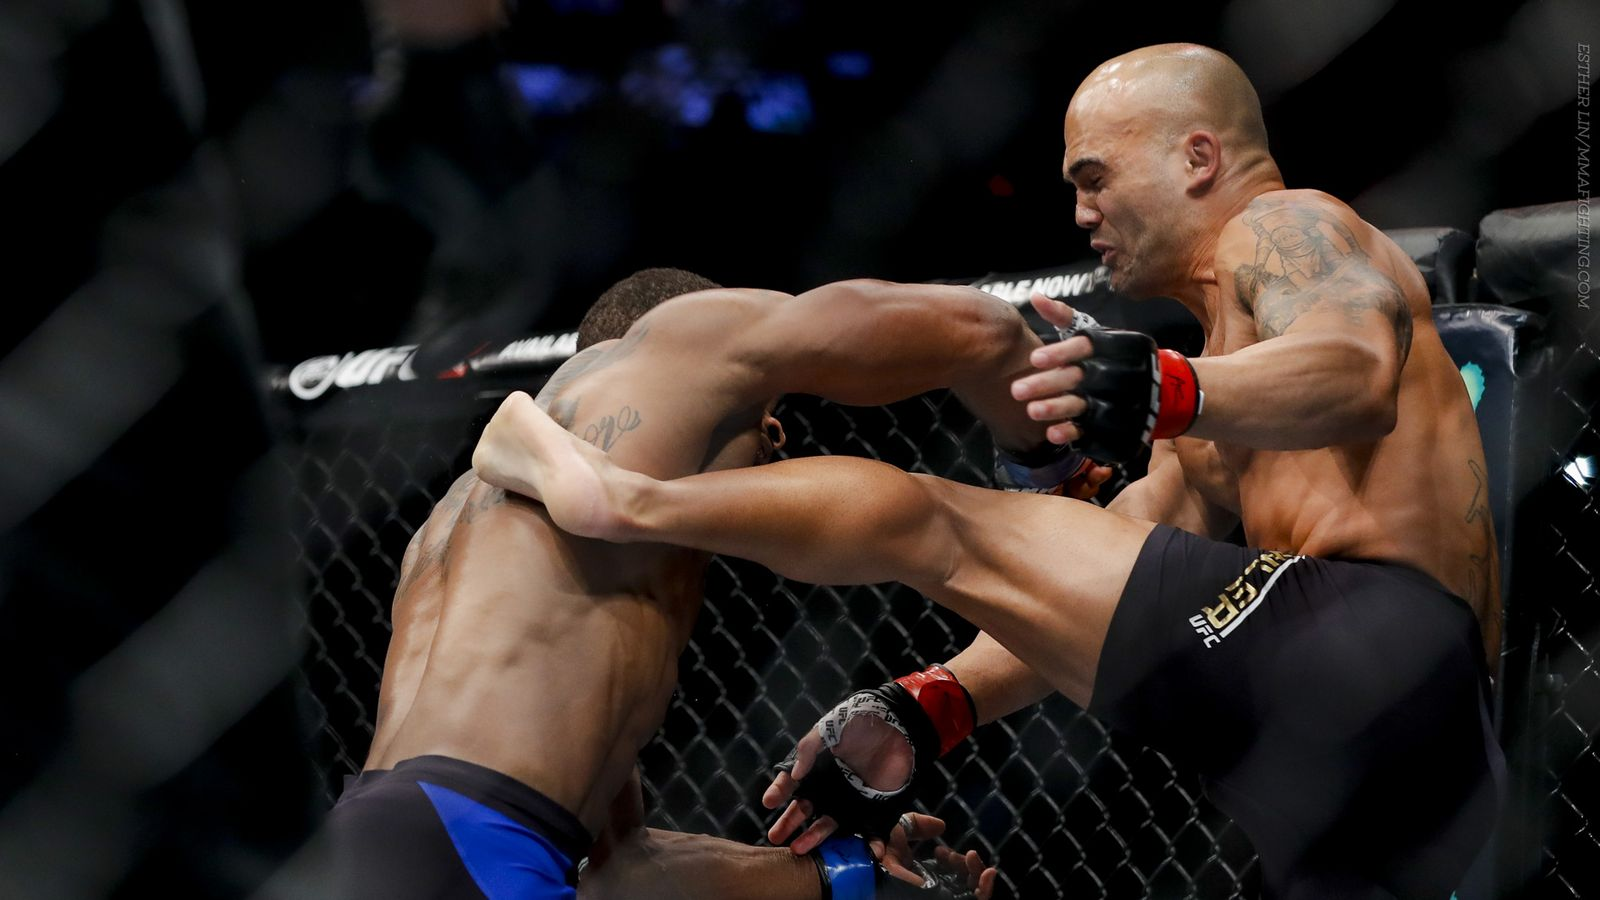 robbie lawler held his own on tyrone wooley 2016 mma